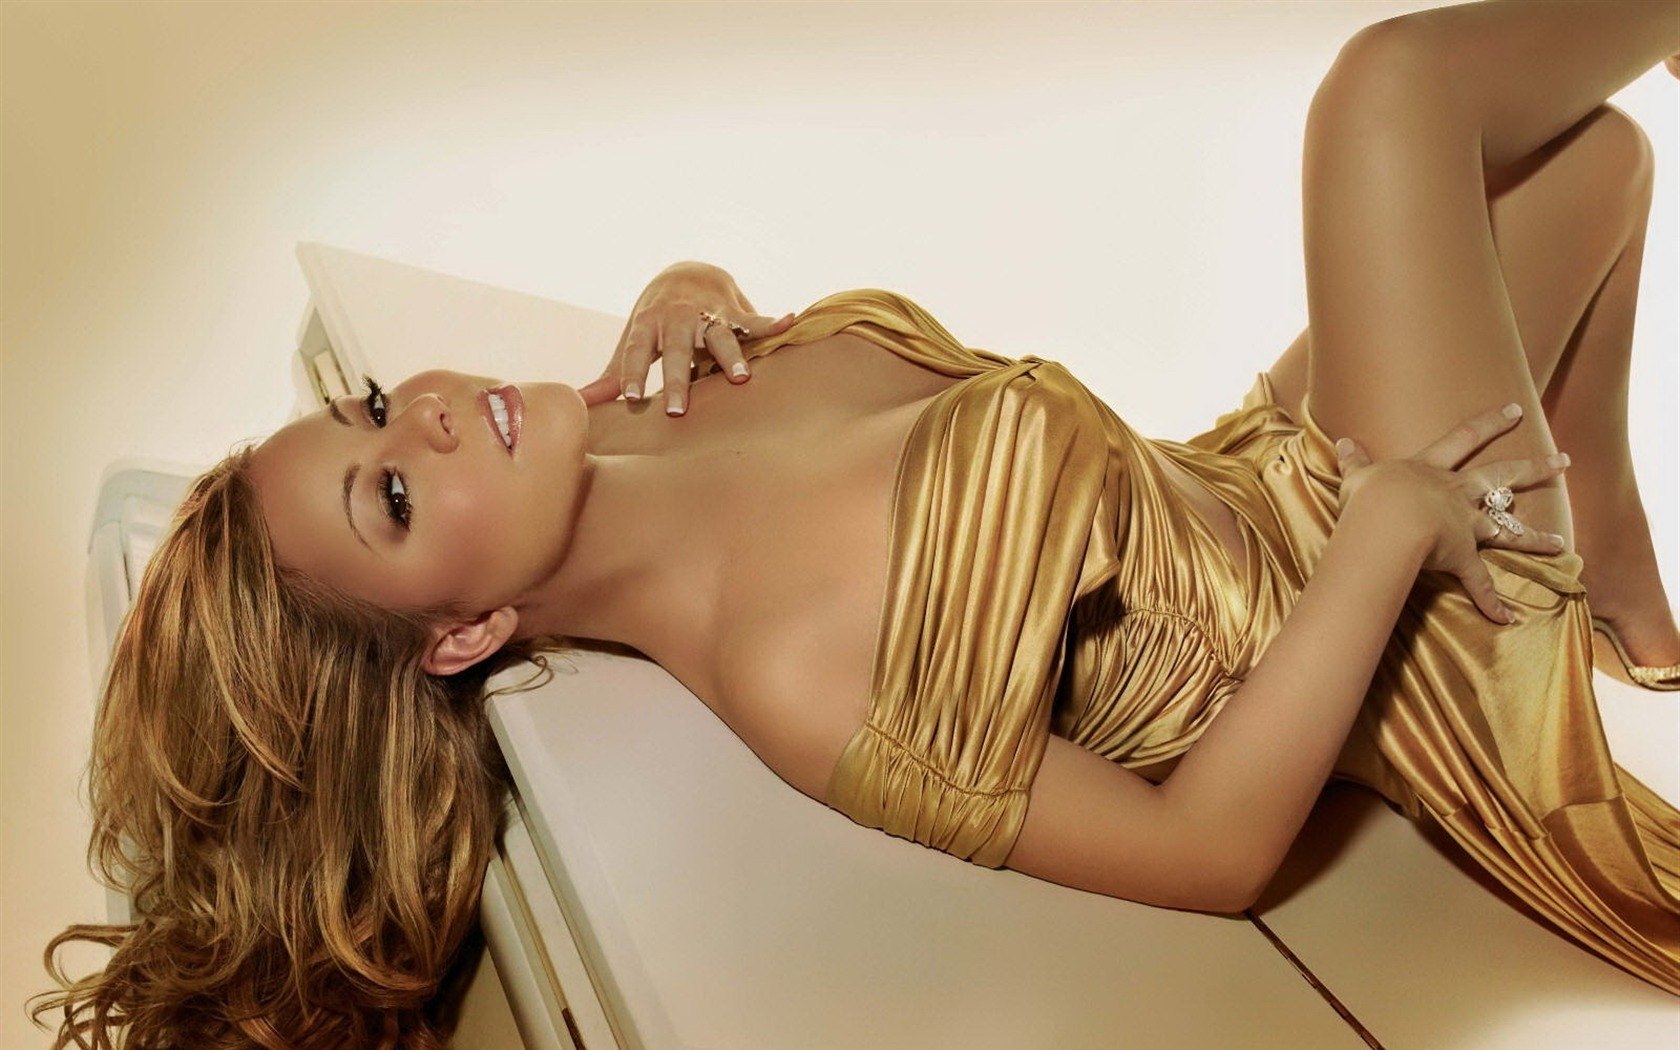 Mariah Carey #036 - 1680x1050 Wallpapers Pictures Photos Images